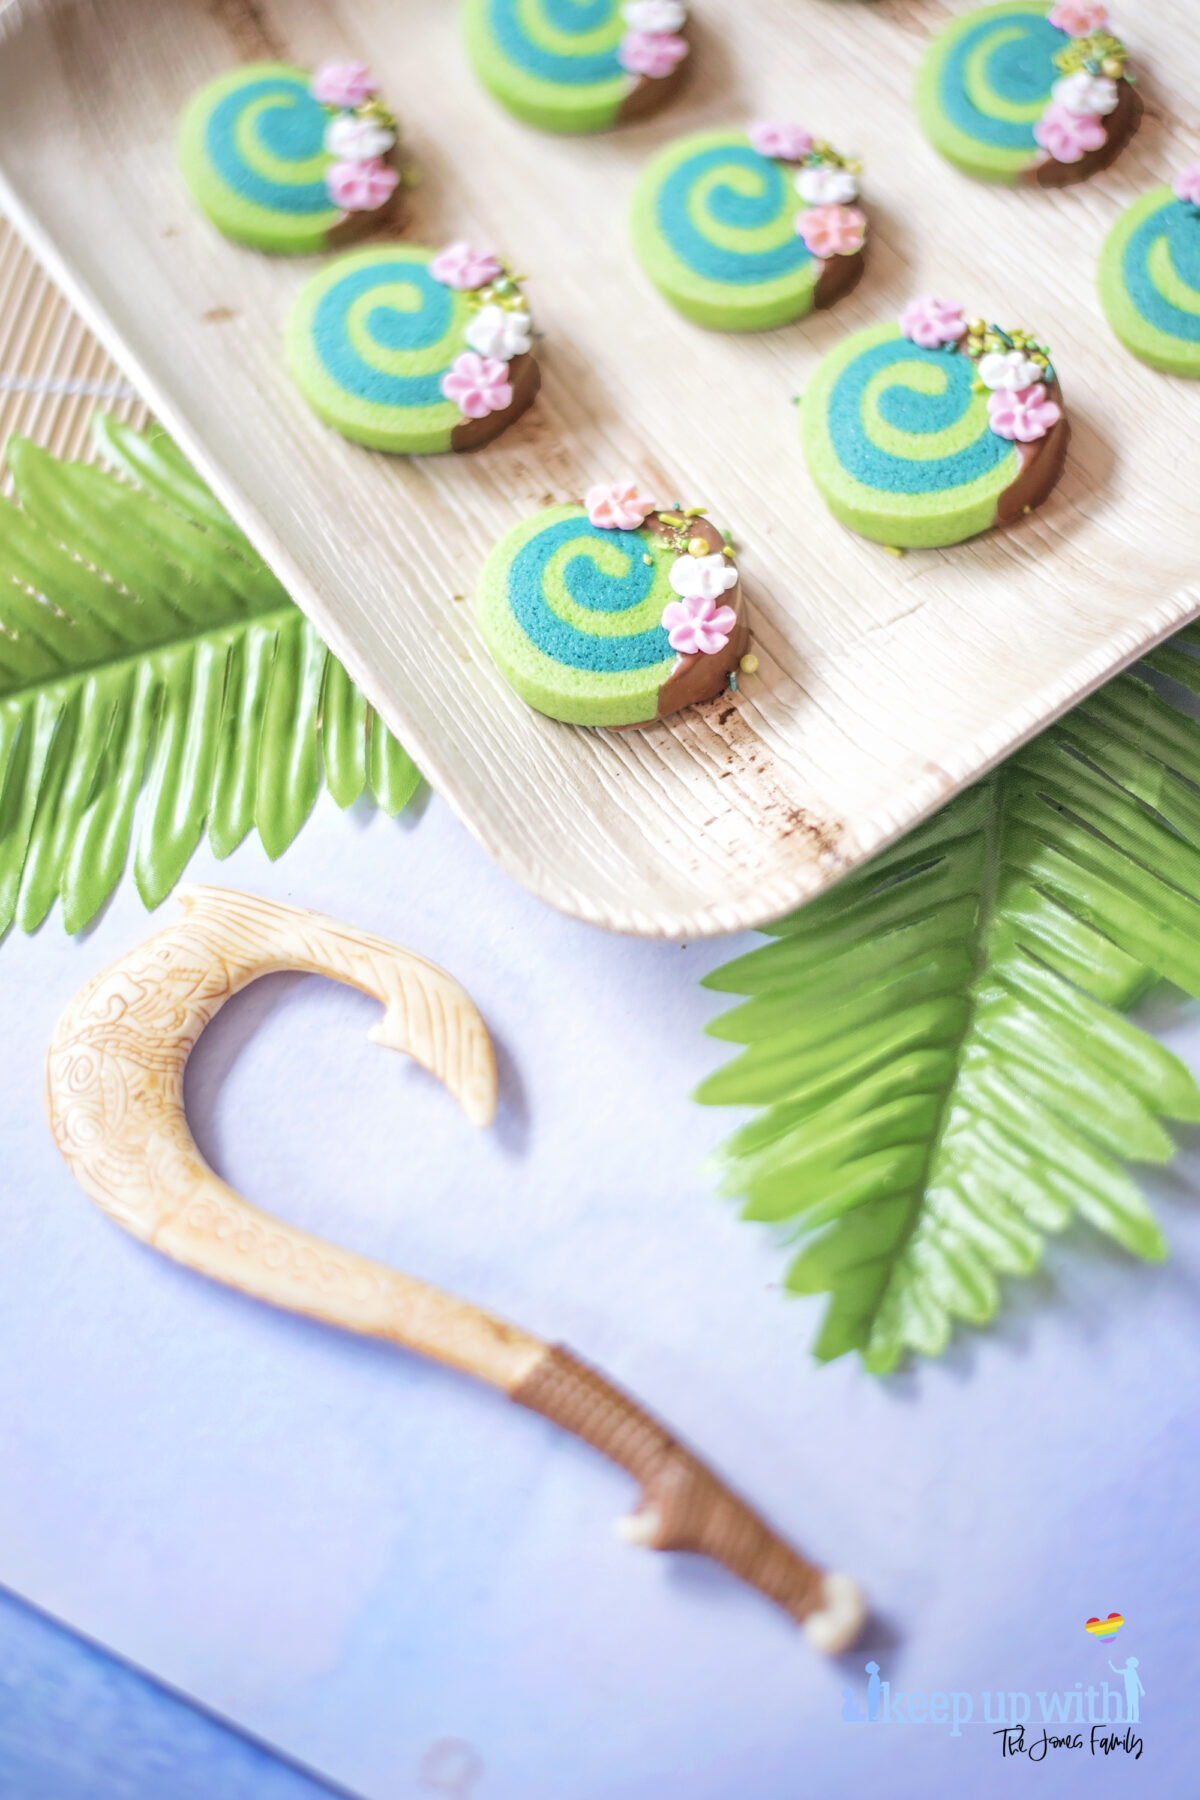 Image shows how to make Disney's Moana Heart of Te Fiti Biscuits, a swirl of bright and dark green, dipped slightly in milk chocolate and embellished with sugar blossom flowers and green sprinkles.  They are set on a bamboo plate with a fern underneath, and Maui's fish hook is resting on the plate also. Image by keep up with the jones family.